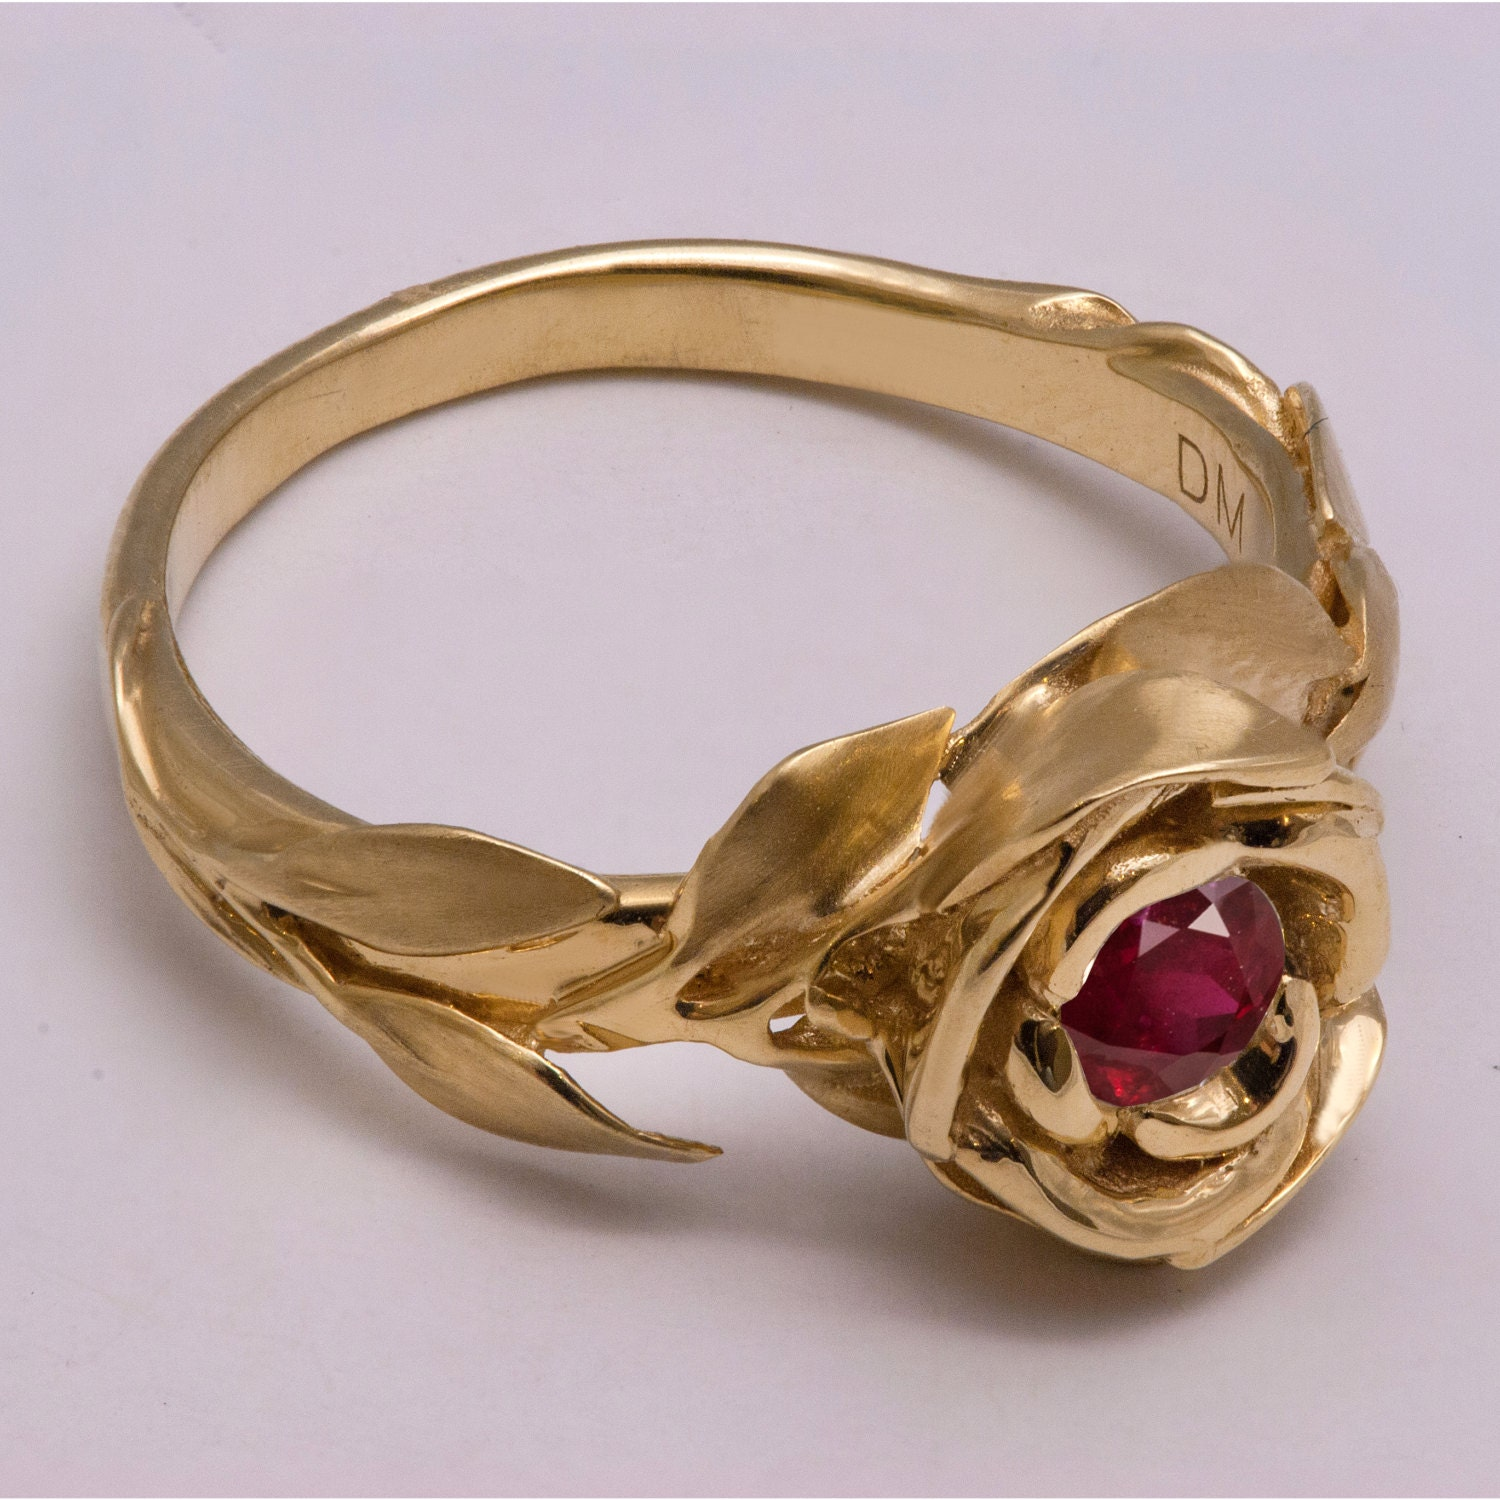 Rose Engagement Ring No.1 14K Gold And Ruby Engagement Ring